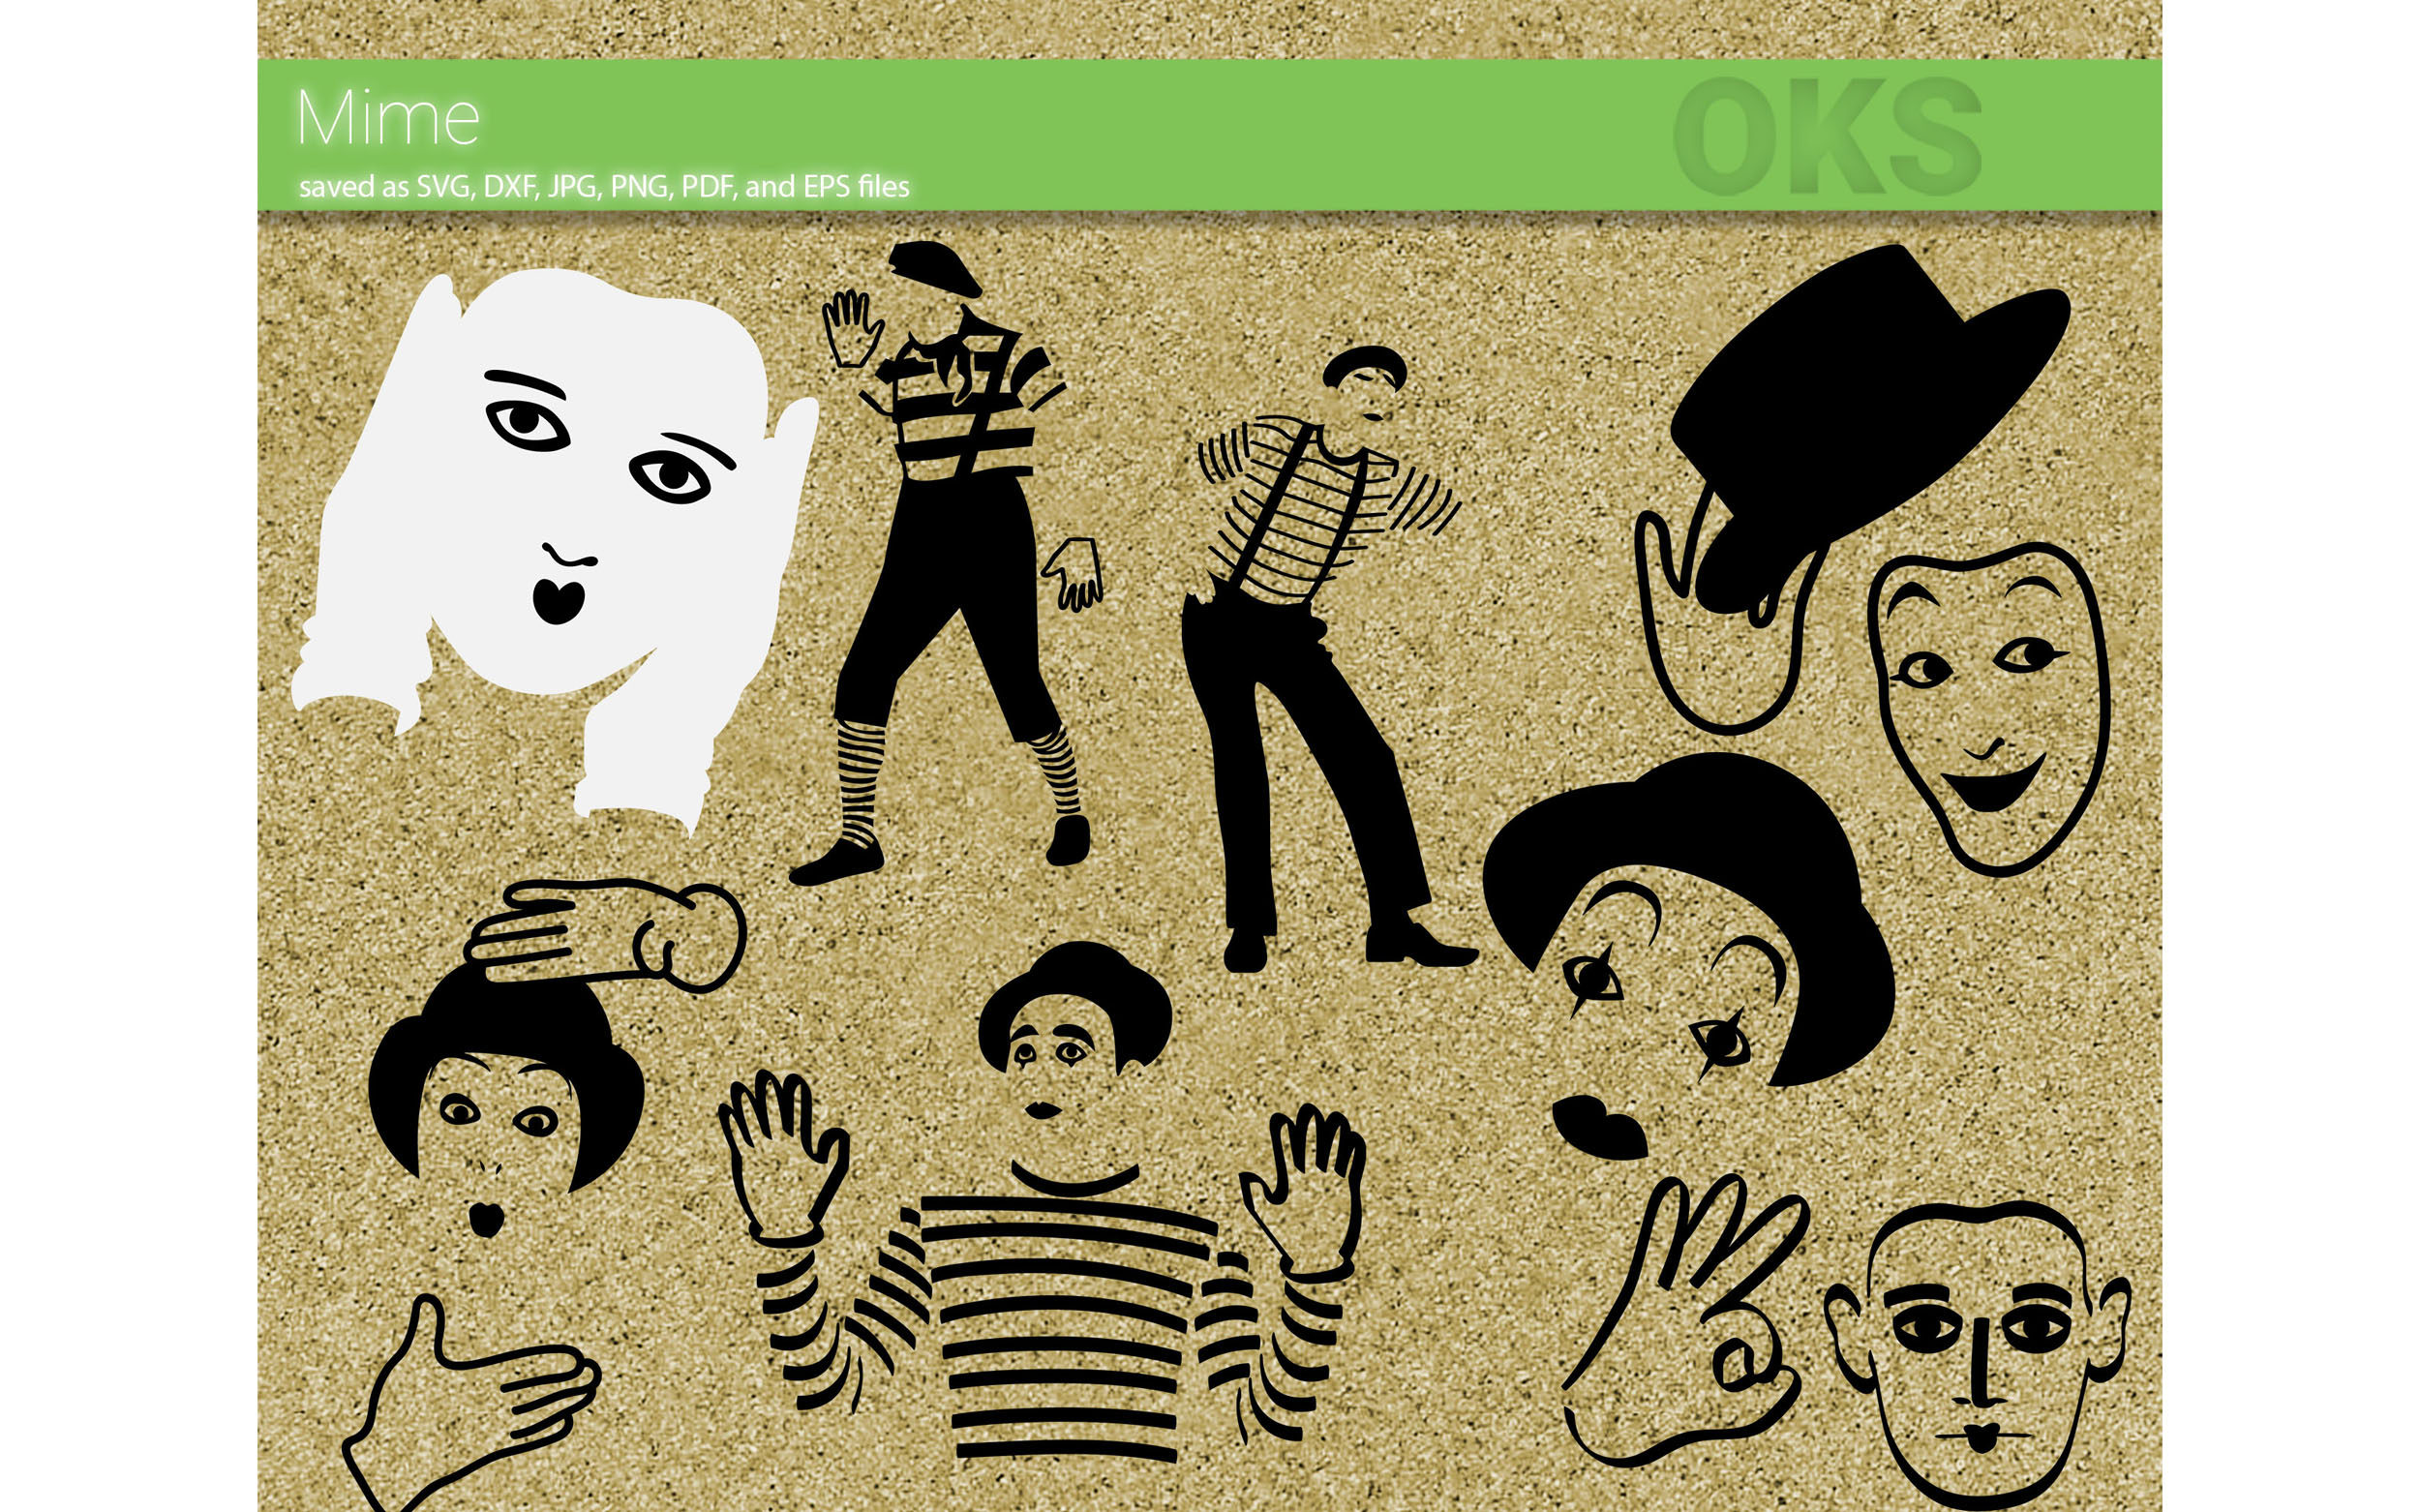 Download Free Mime Bundle Graphic By Crafteroks Creative Fabrica for Cricut Explore, Silhouette and other cutting machines.